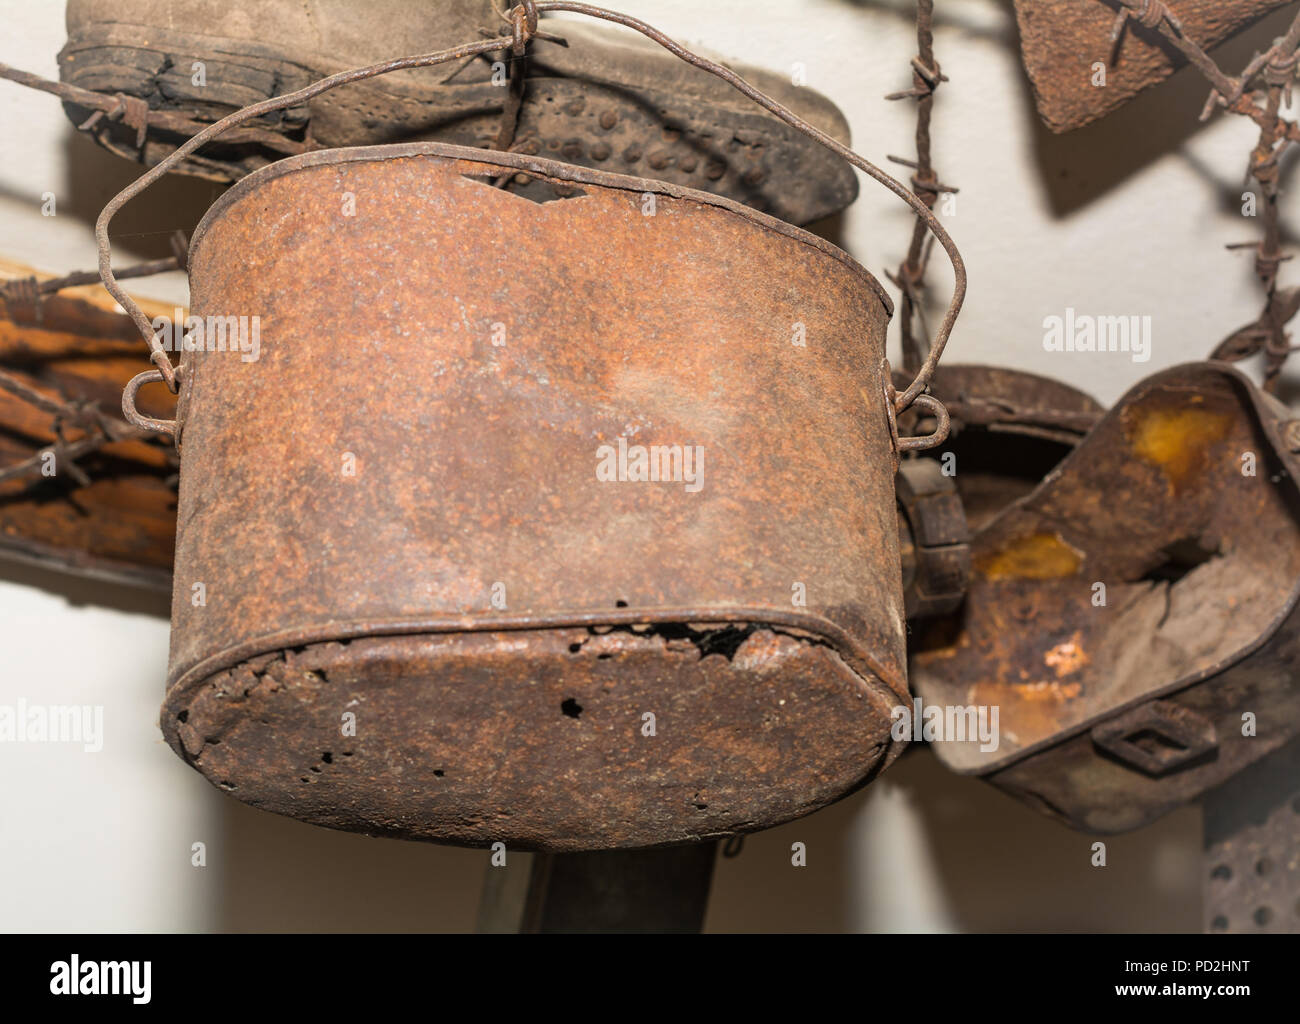 Ziano di Fiemme, Monte Cauriol, Italy - september 23, 2017: Small Museum of the First World War: tin receptacle in which soldiers eat rations - Stock Image